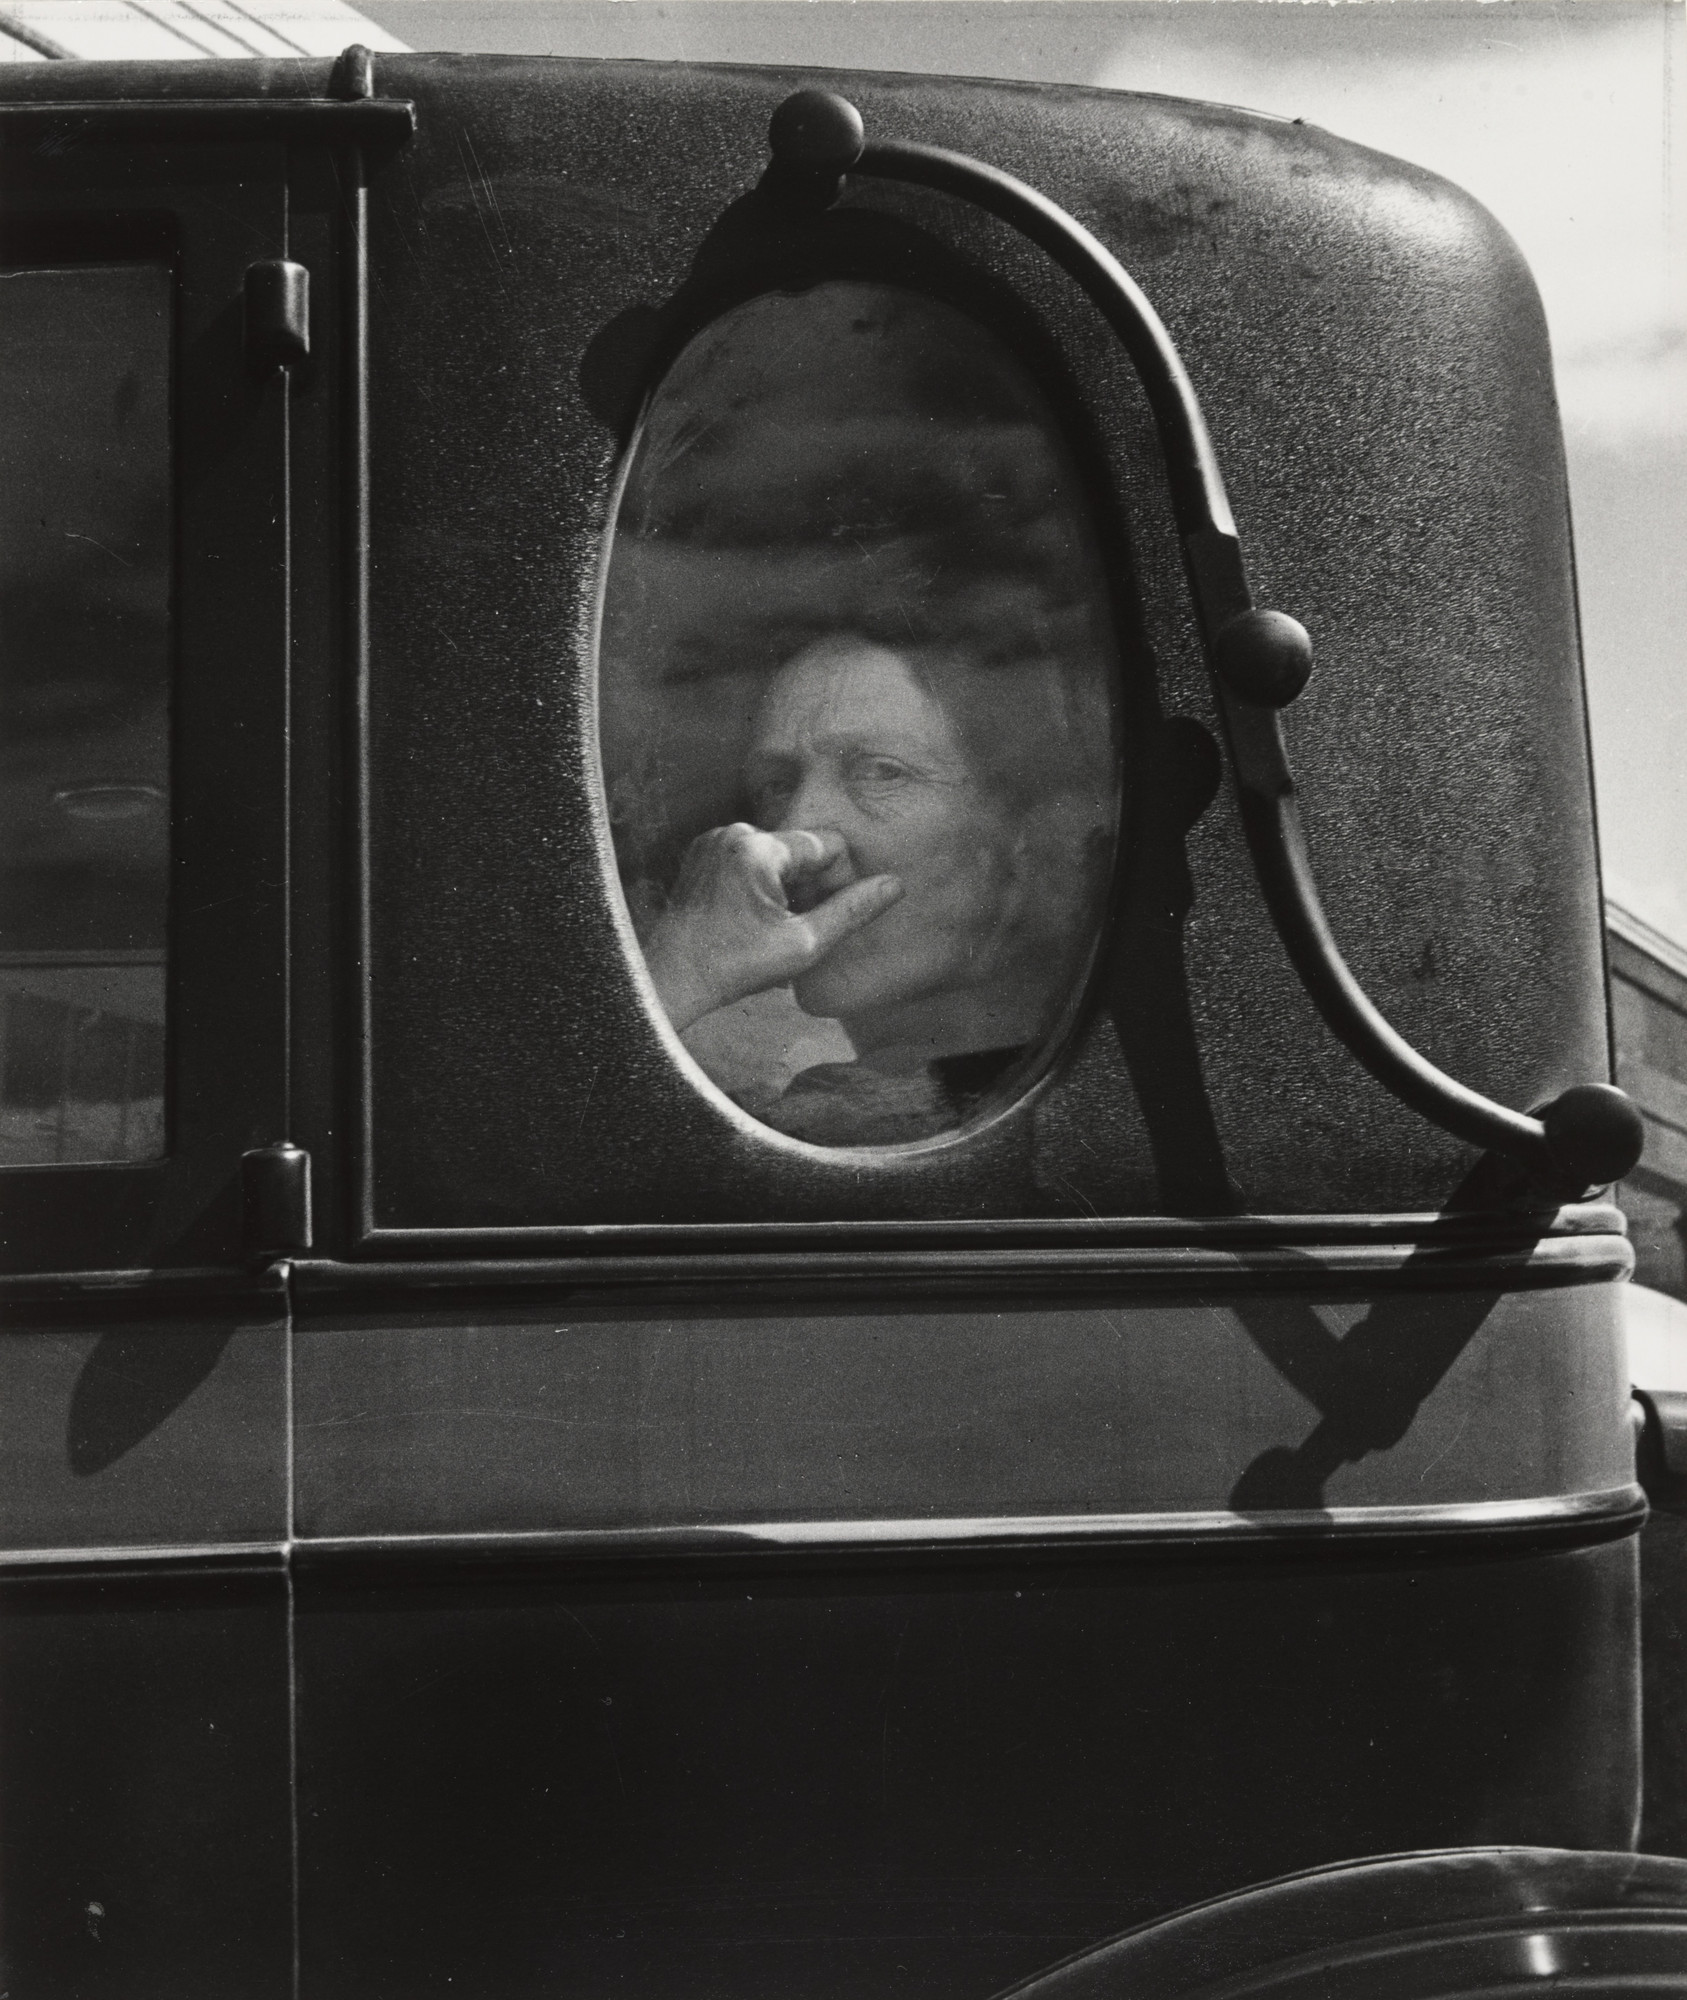 Dorothea Lange. Funeral Cortege, End of an Era in a Small Valley Town, California. 1938